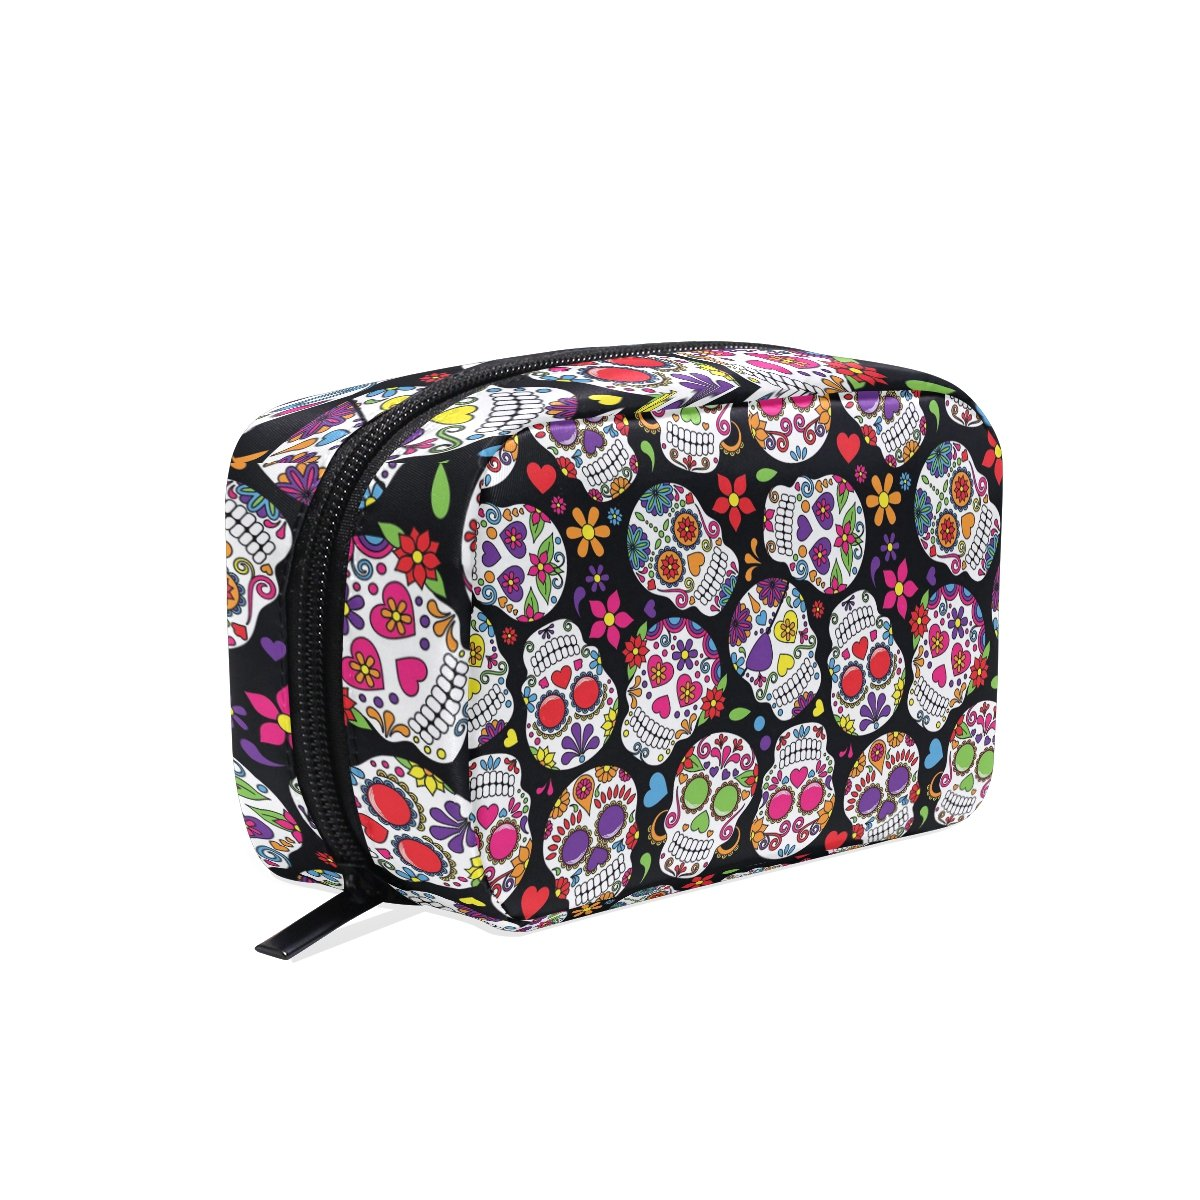 ALAZA Day Of The Dead Sugar Skull Cosmetic Bag Black Zipper Storage Bag Portable Ladies Travel Square Makeup Brushes Bag